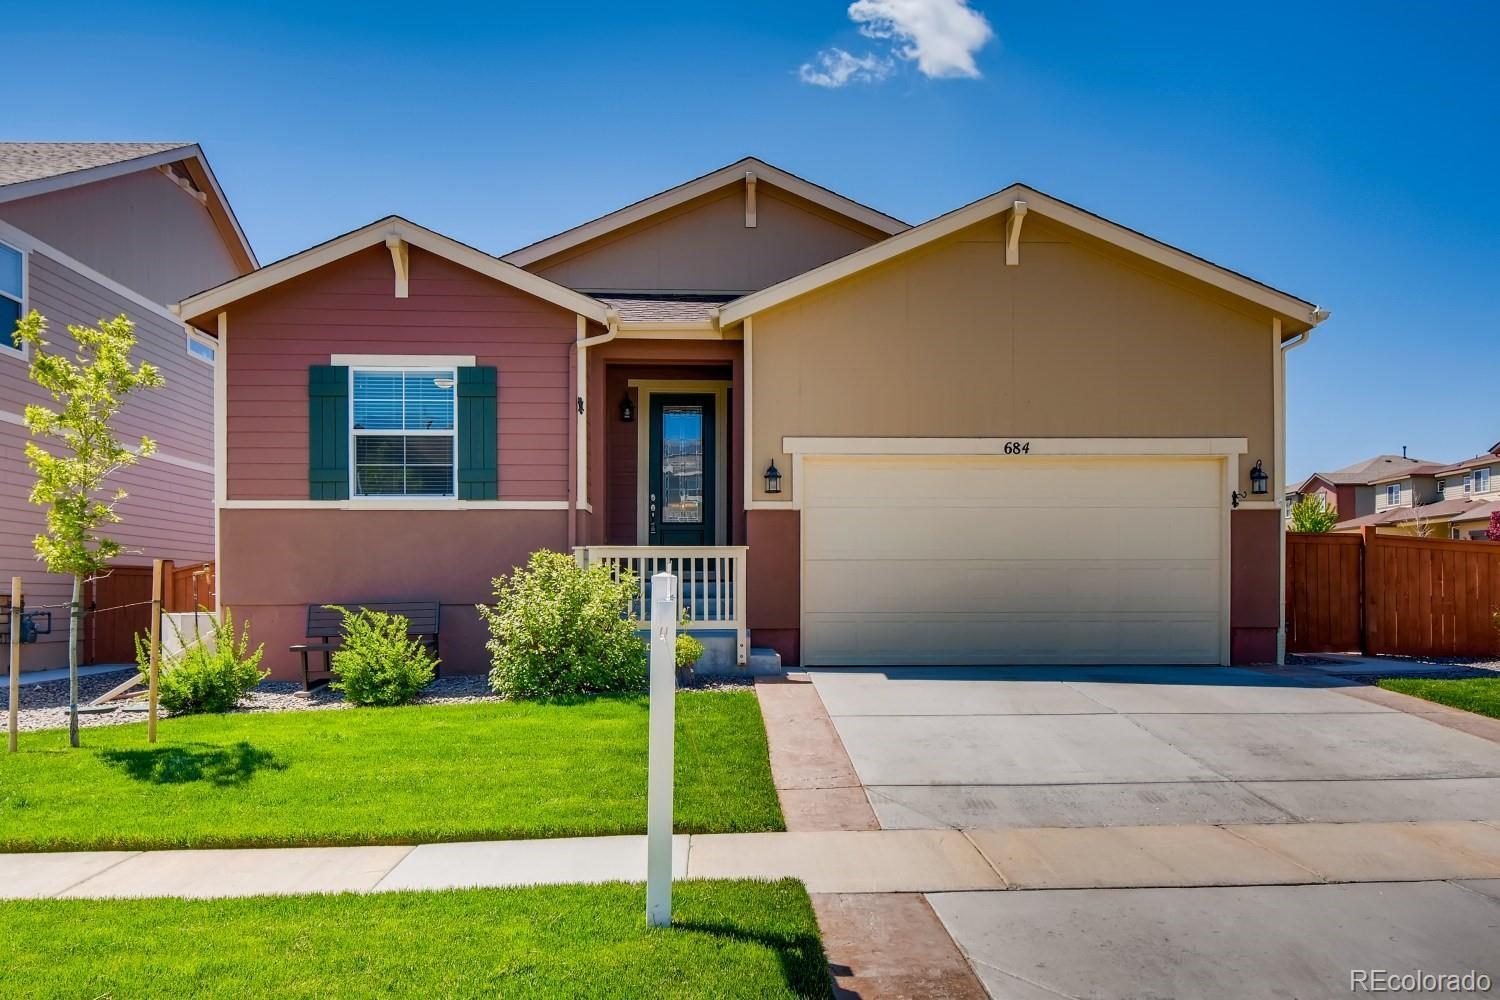 684 W 170th Place, Broomfield, CO 80023 - #: 9614620